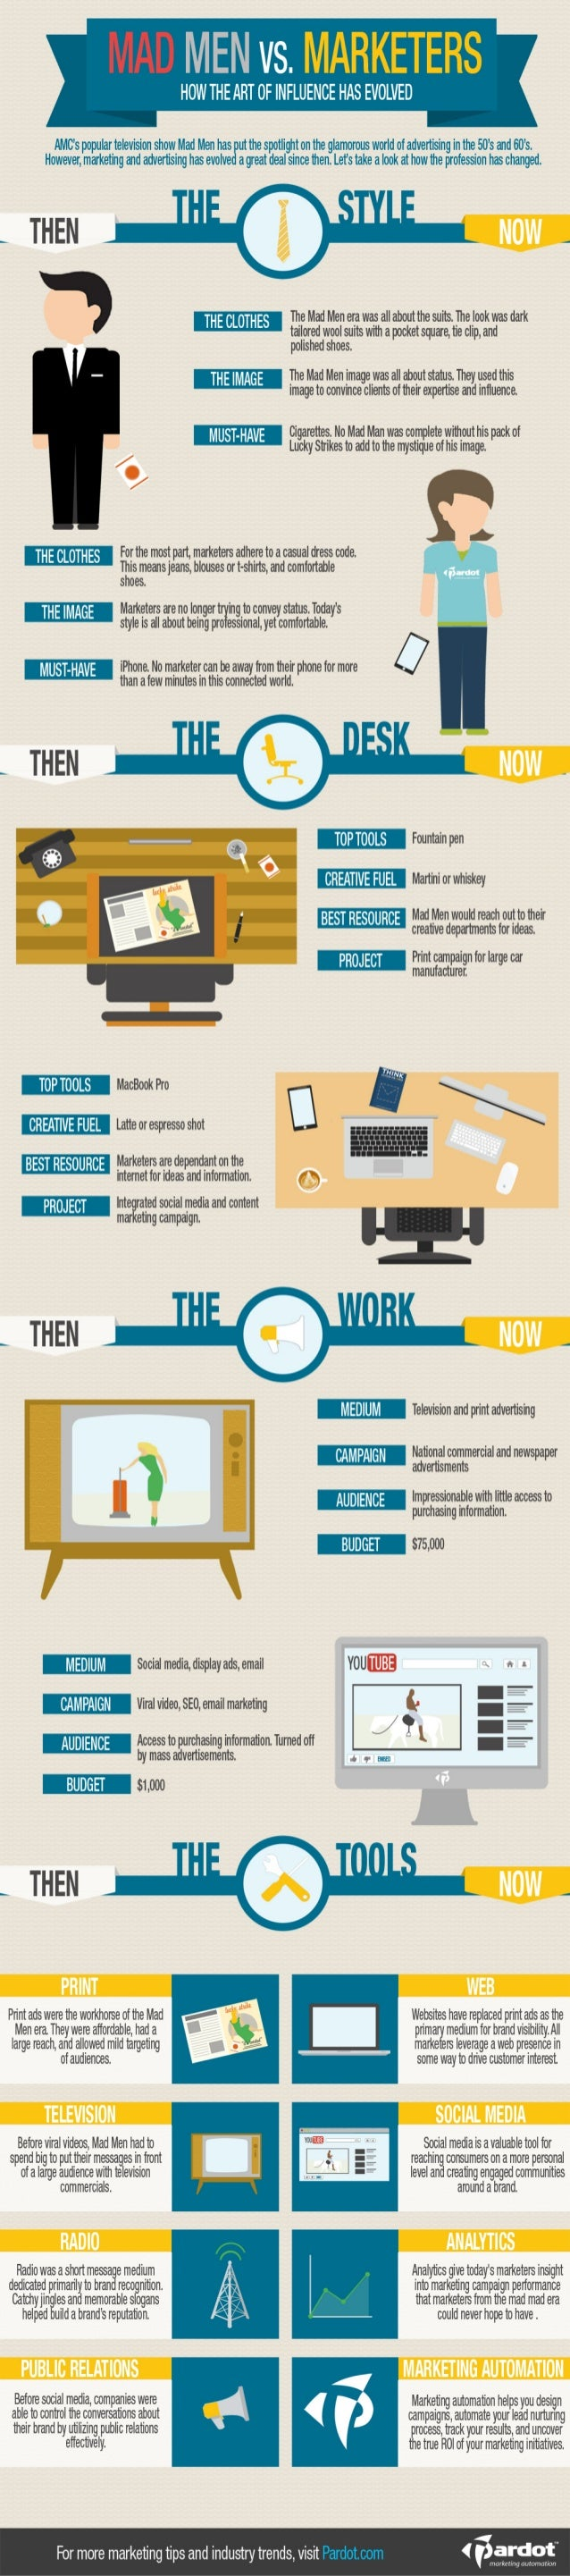 Mad Men vs. Marketers [Infographic]